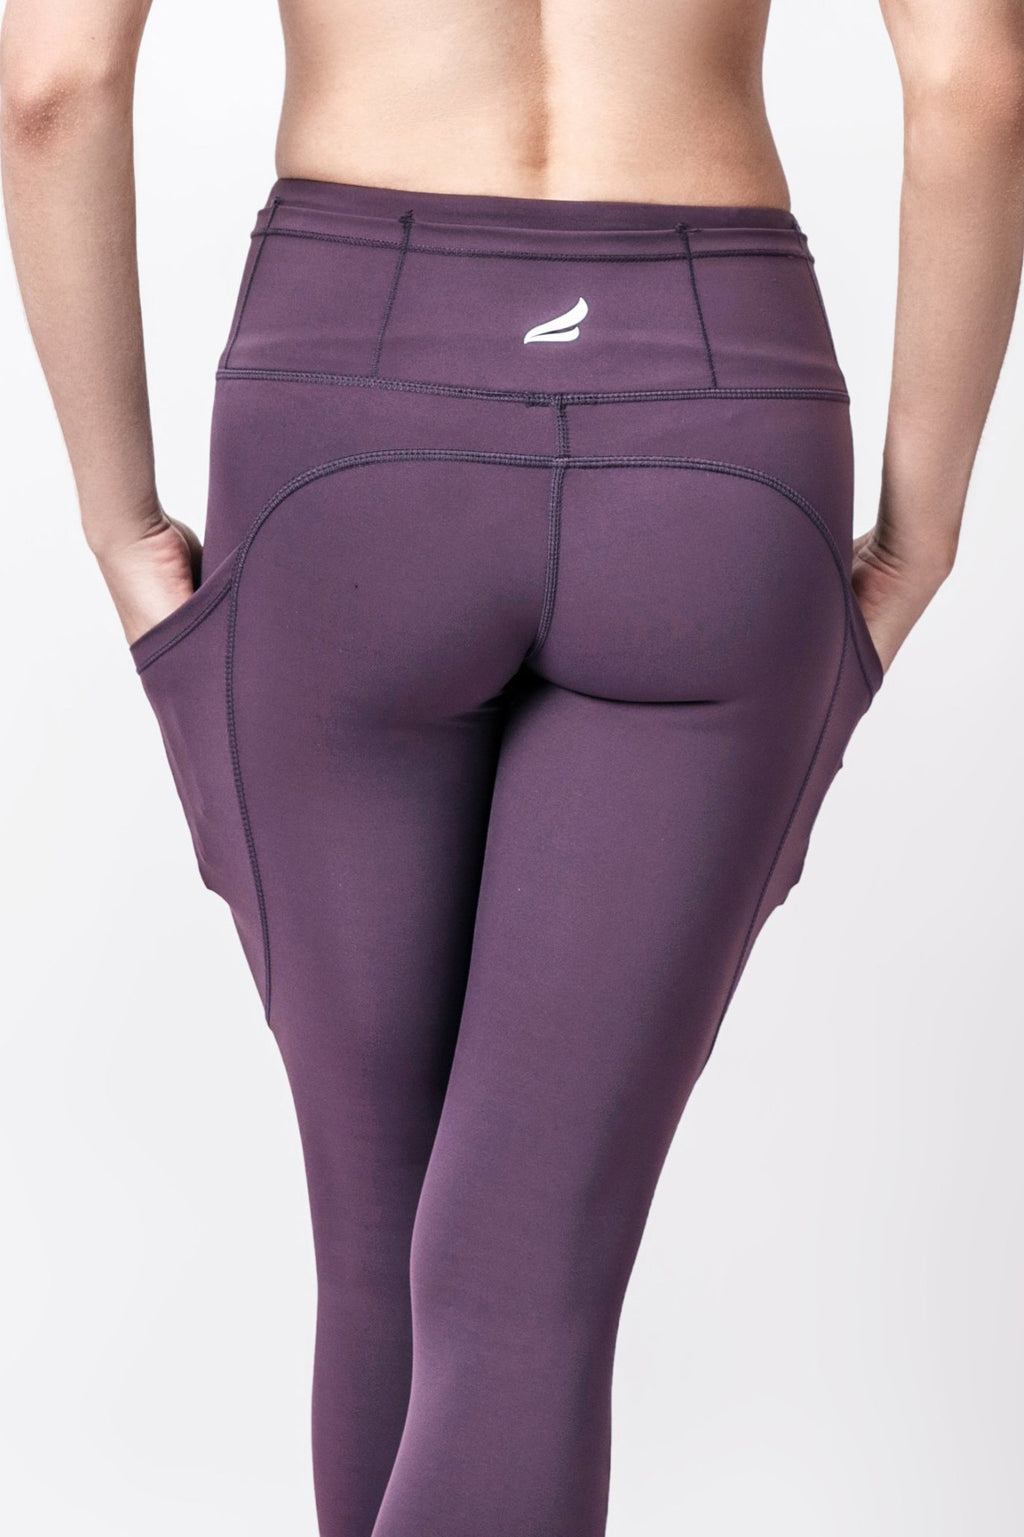 AngelVMax sport pants with pocket